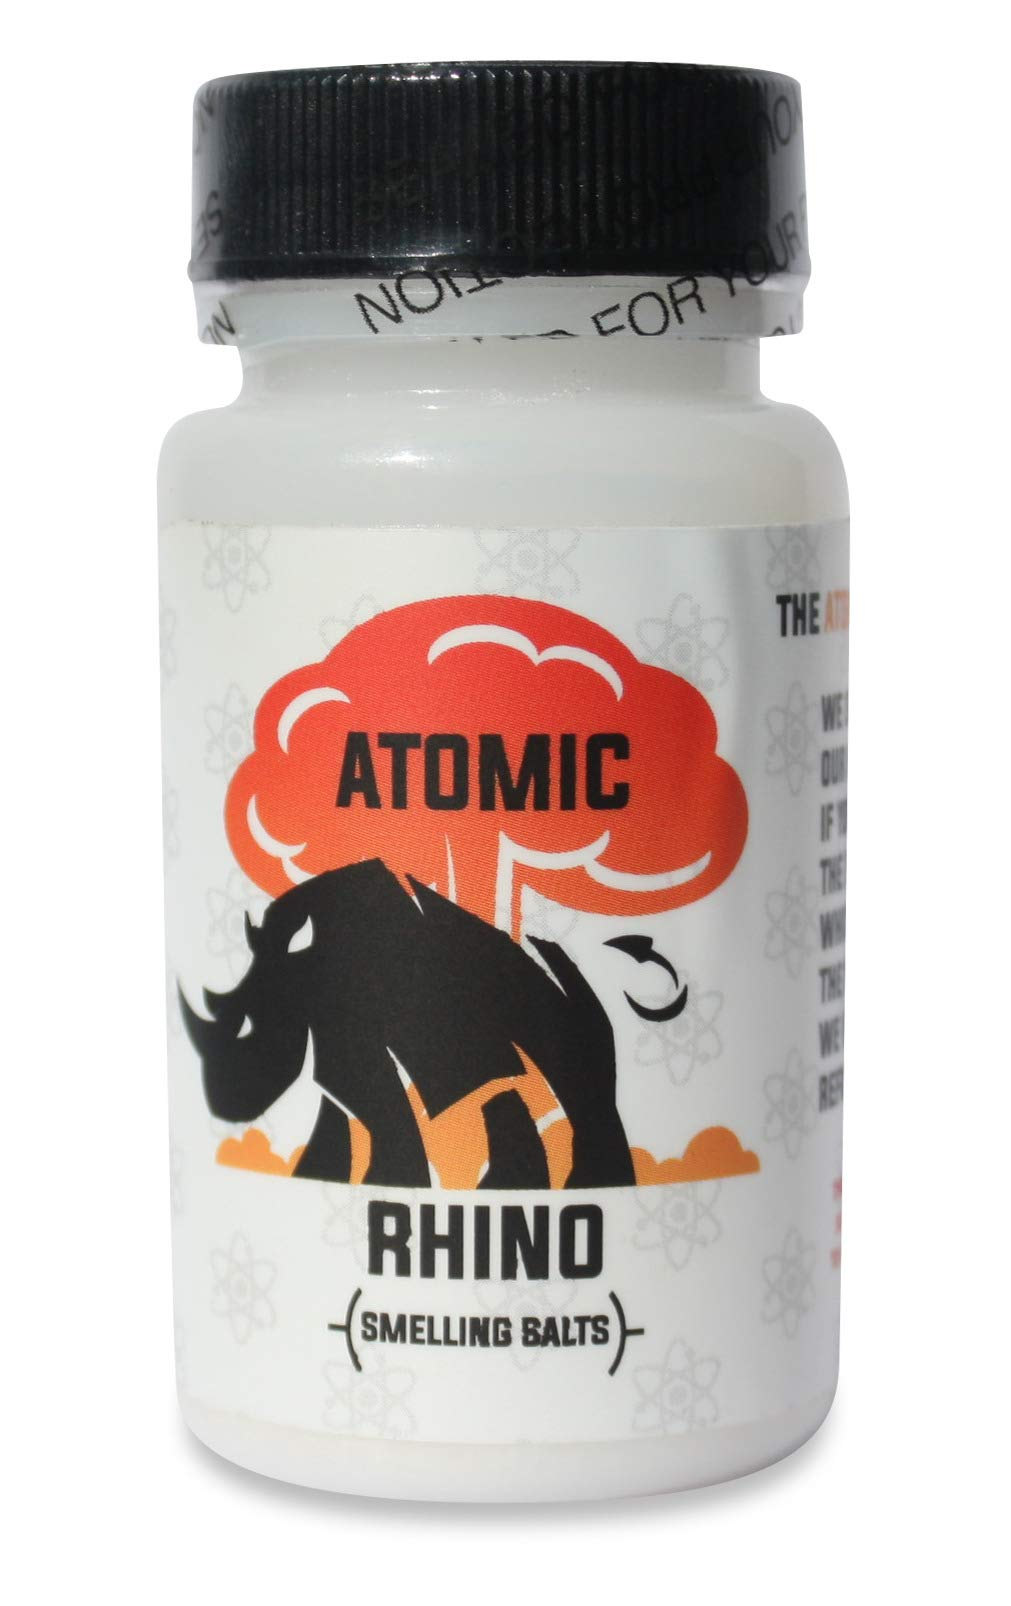 Atomic Rhino | Smelling Salts for Athletes | 100's Of Uses per Bottle | Explosive Workout Sniffing Salts for Massive Energy Boost | Just Add Water to Activate Pre Workout by ATOMIC RHINO